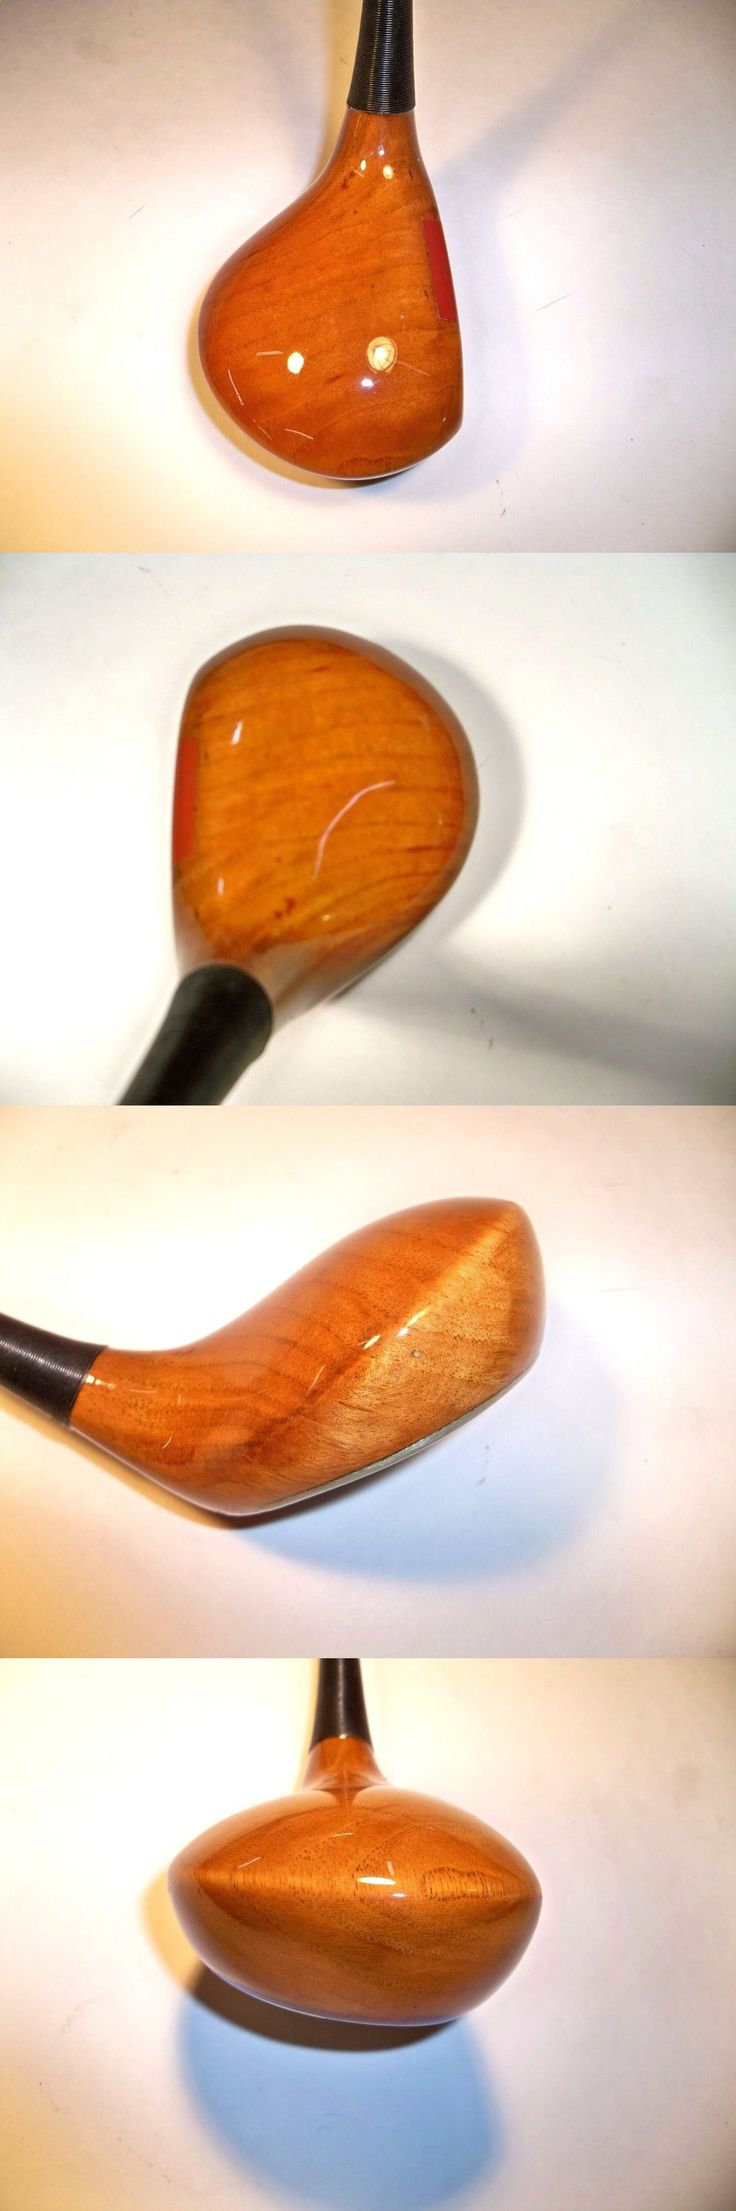 Golf Driver - Vintage Golf Clubs and Shafts 83043: Macgregor 693T Driver Vintage Persimmon Refinish Rh Mens Golf Club -> BUY IT NOW ONLY: $39 on eBay!